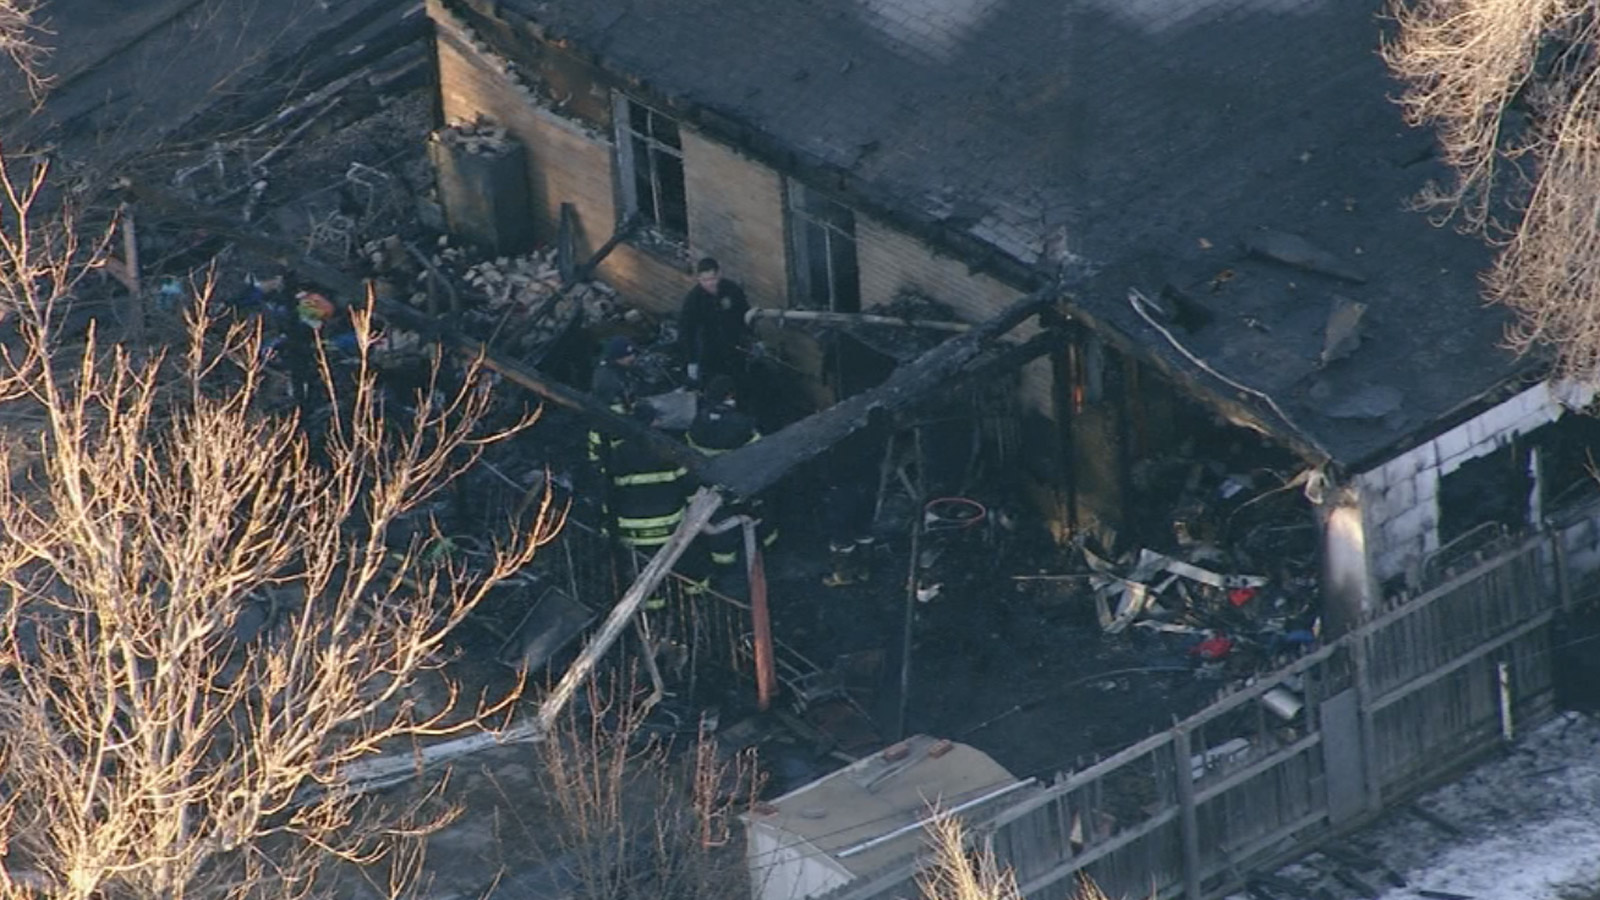 Copter4 flew over a house destroyed by an early morning fire on Friday morning. (credit: CBS)